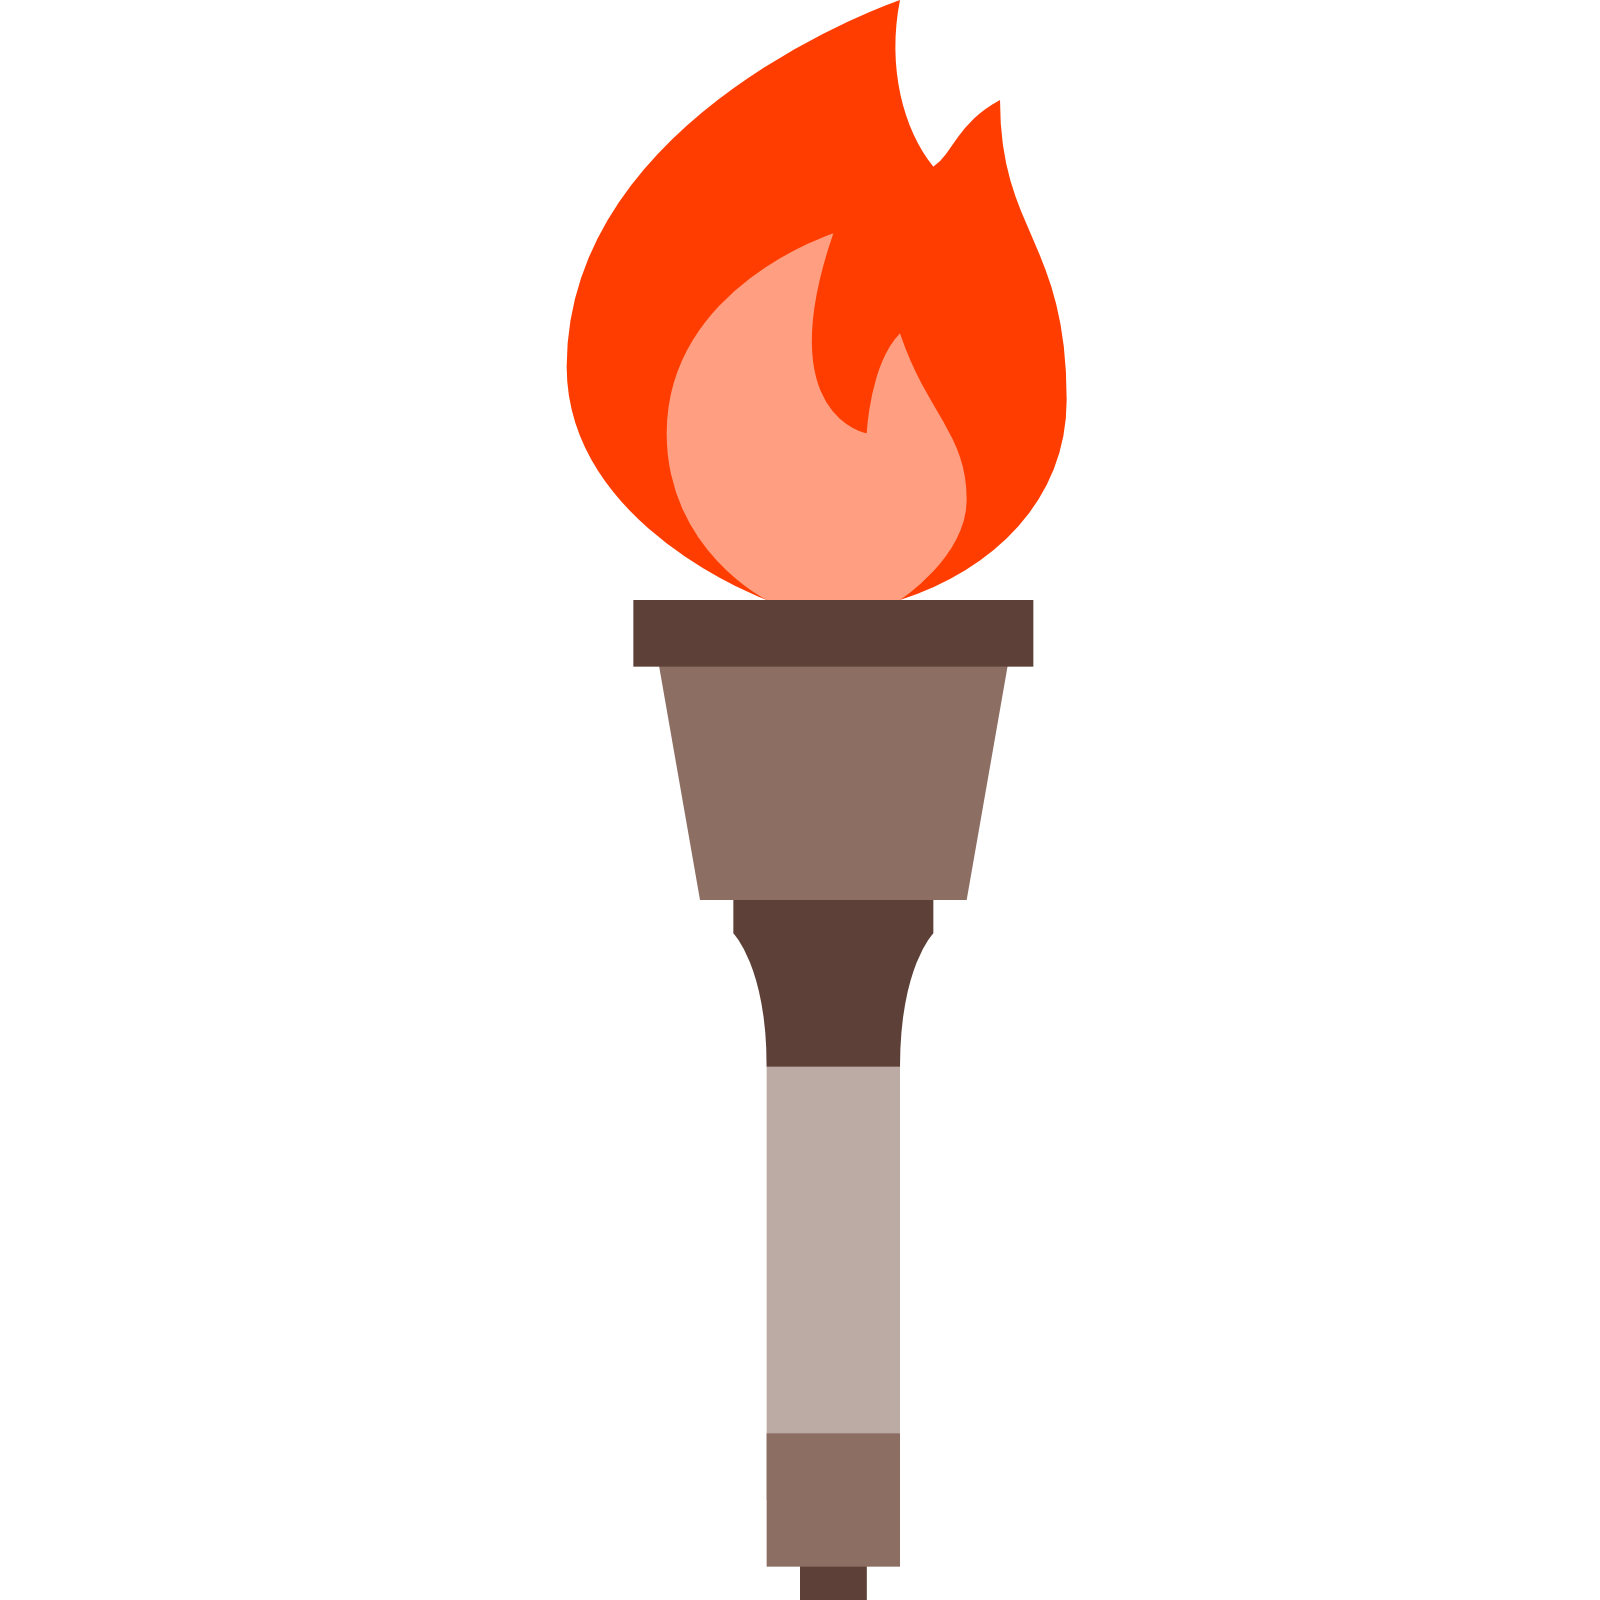 Olympic torch png. Free icons and backgrounds